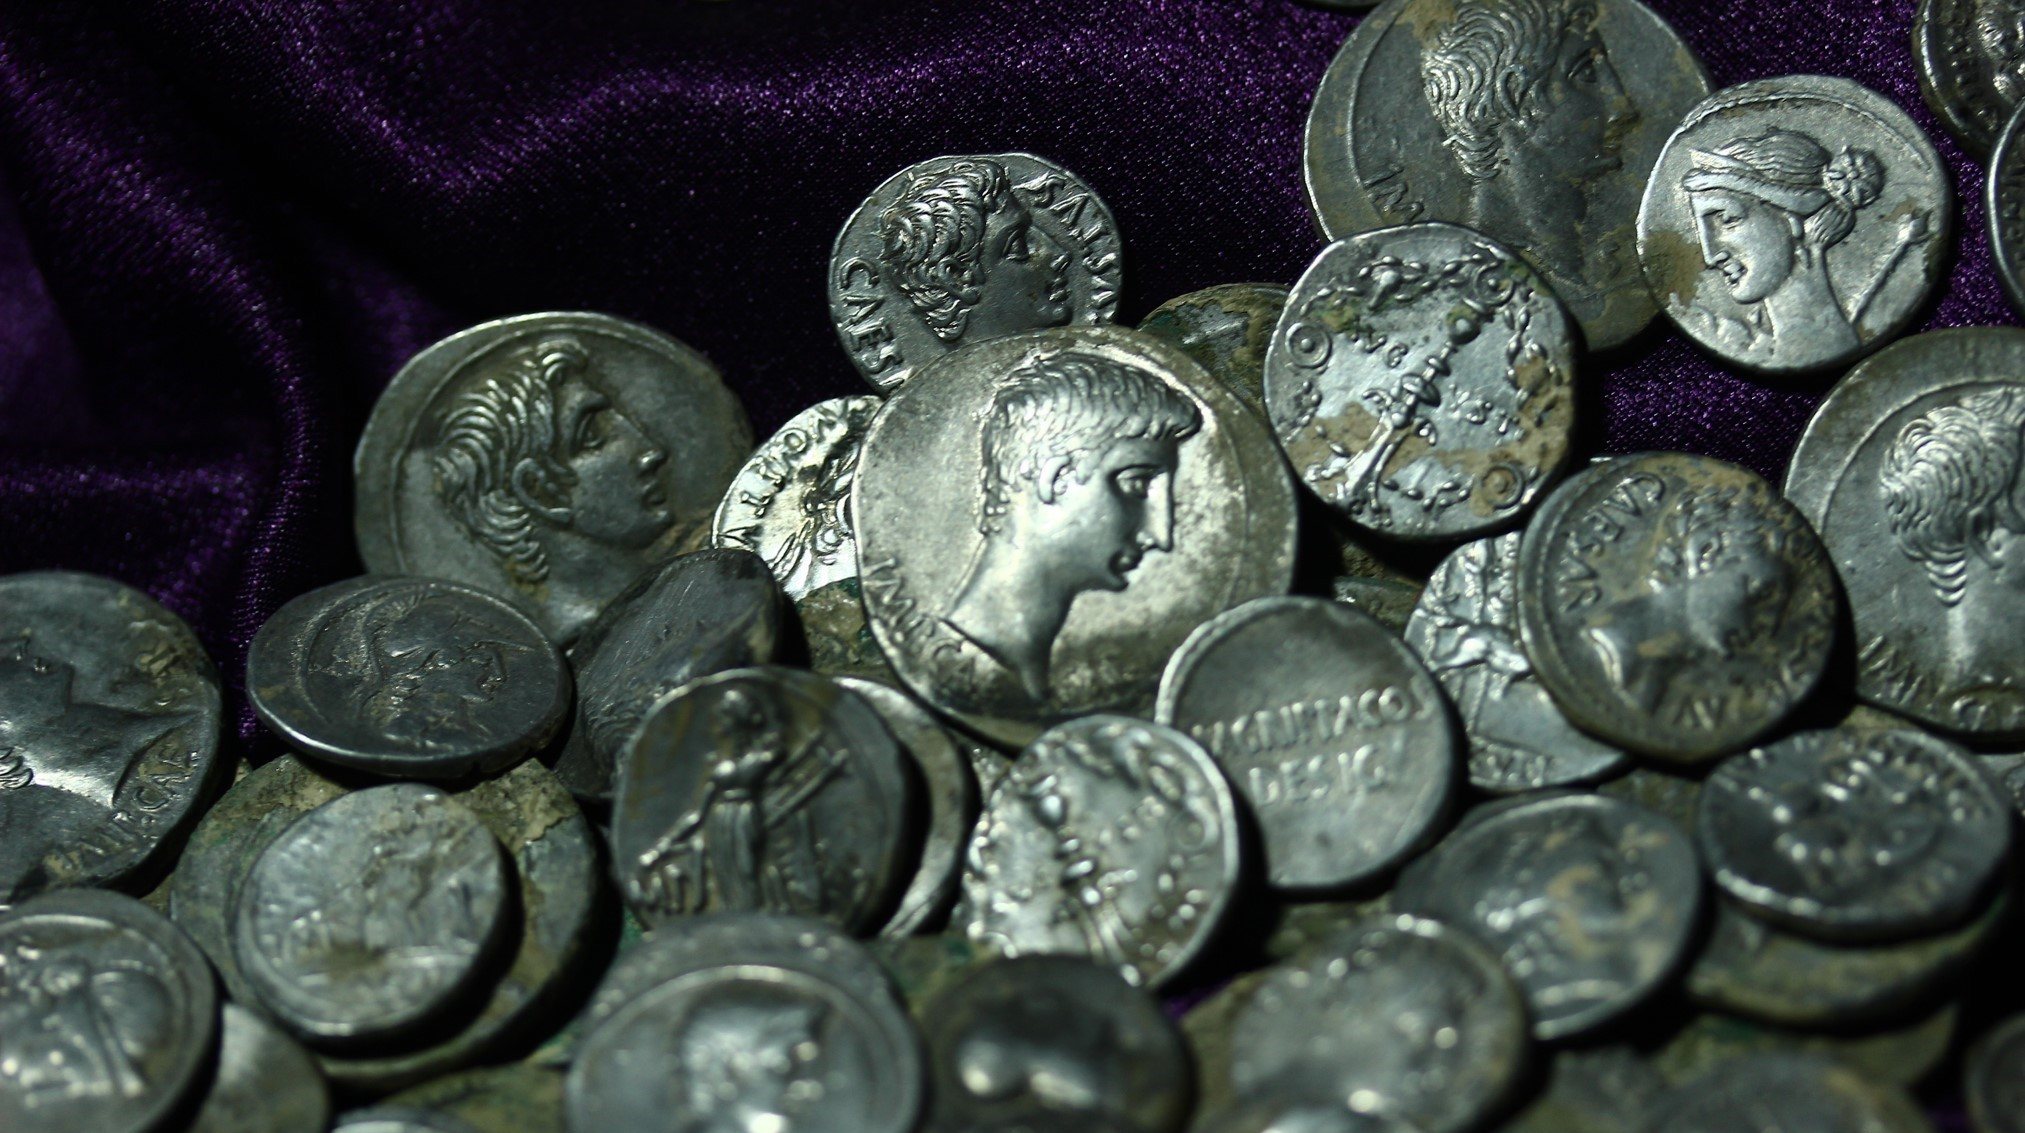 The coins featured Roman emperors on one side.